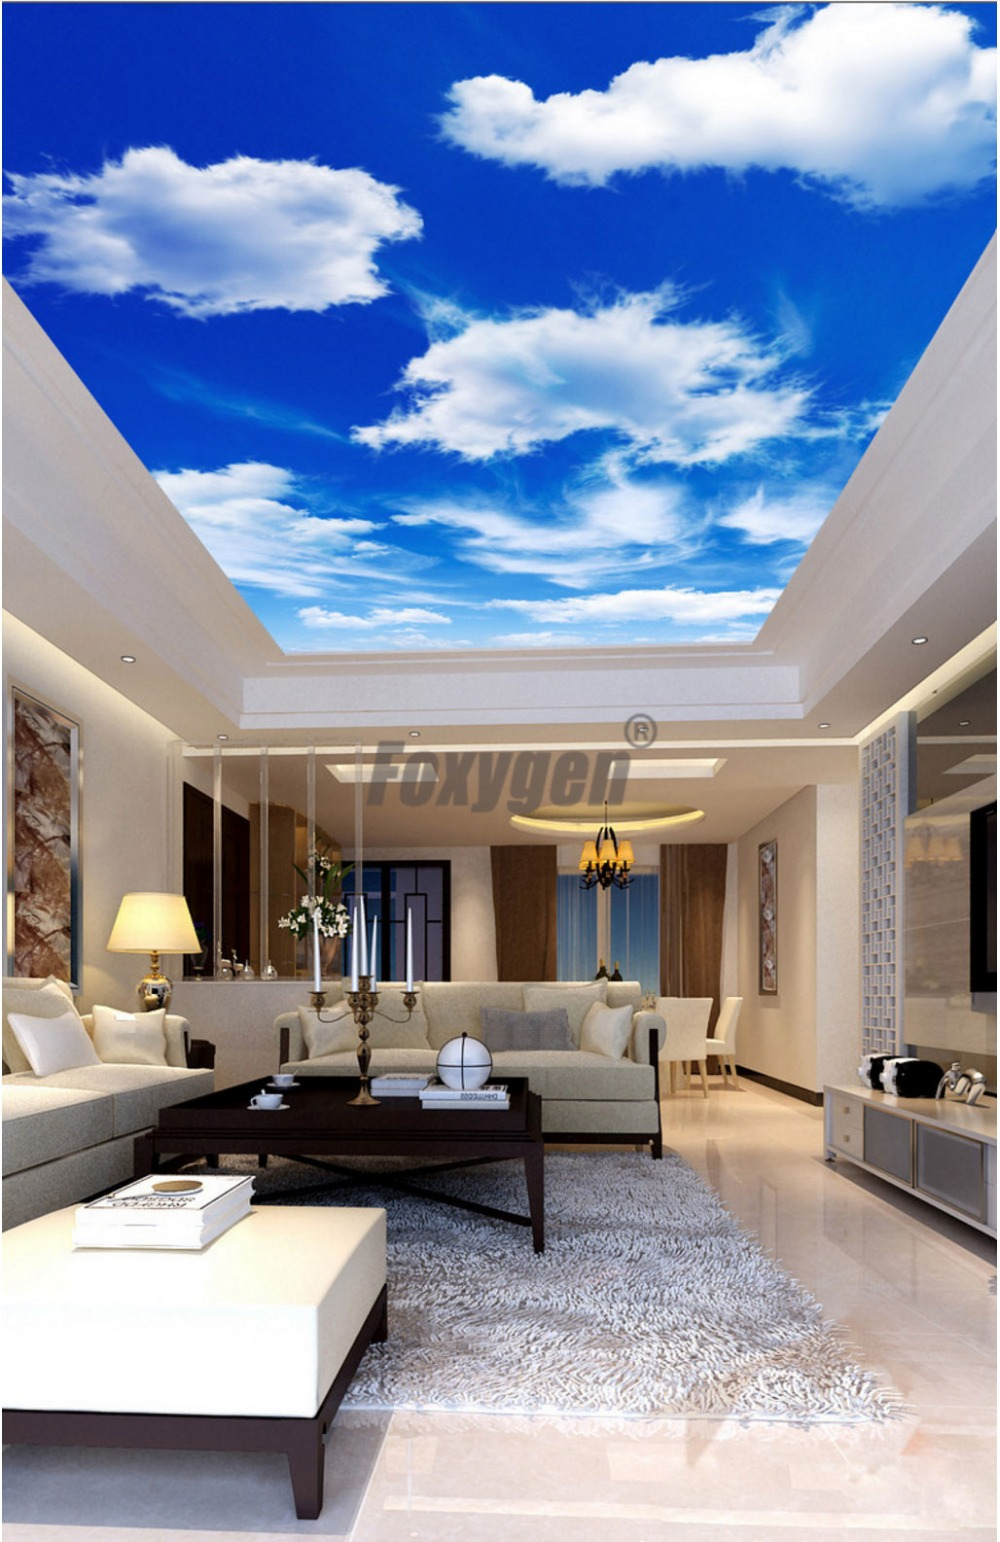 Us 14 0 Nice View Ceiling Film Pvc Stretch Ceiling Film Accessories Pop Ceiling Design For Bedroom In Wallpapers From Home Improvement On Aliexpress